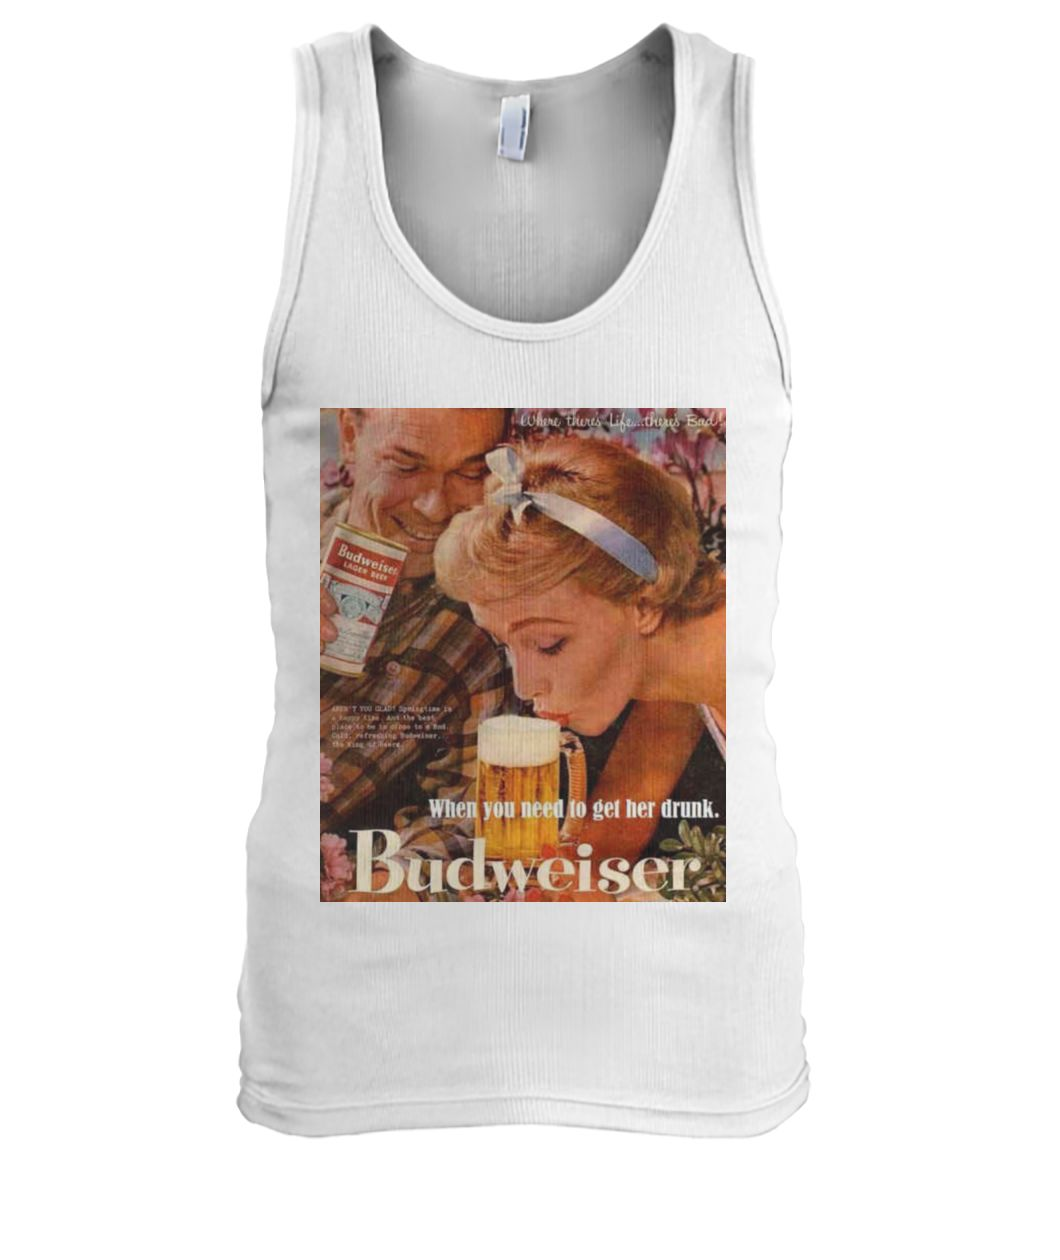 Budweiser Tank- When You Need to Get Her Drunk